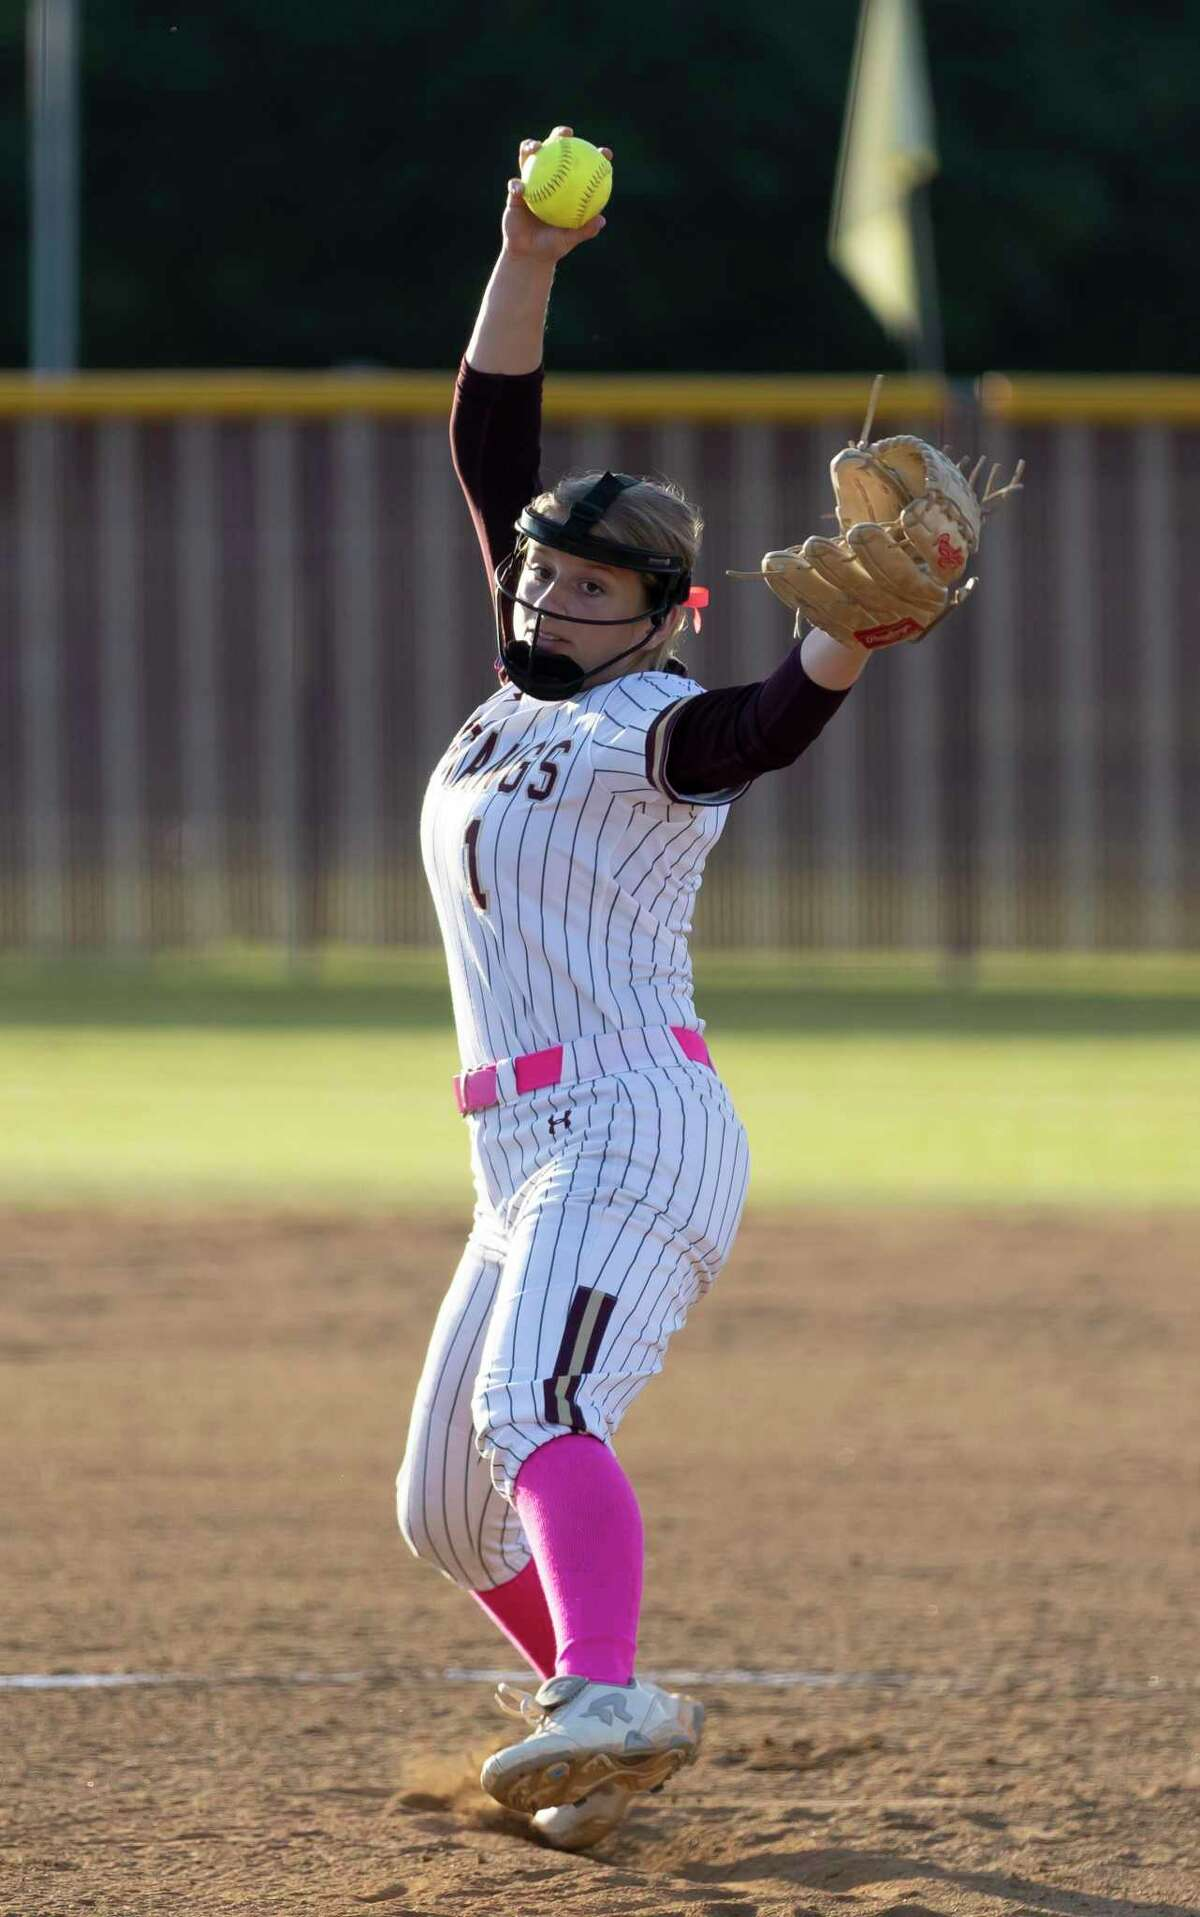 Magnolia West pitcher Tony Tamborello (1) pitches the ball during the first inning of a District 19-5A softball game at against Magnolia West High School, Tuesday, April 20, 2021, in Magnolia.